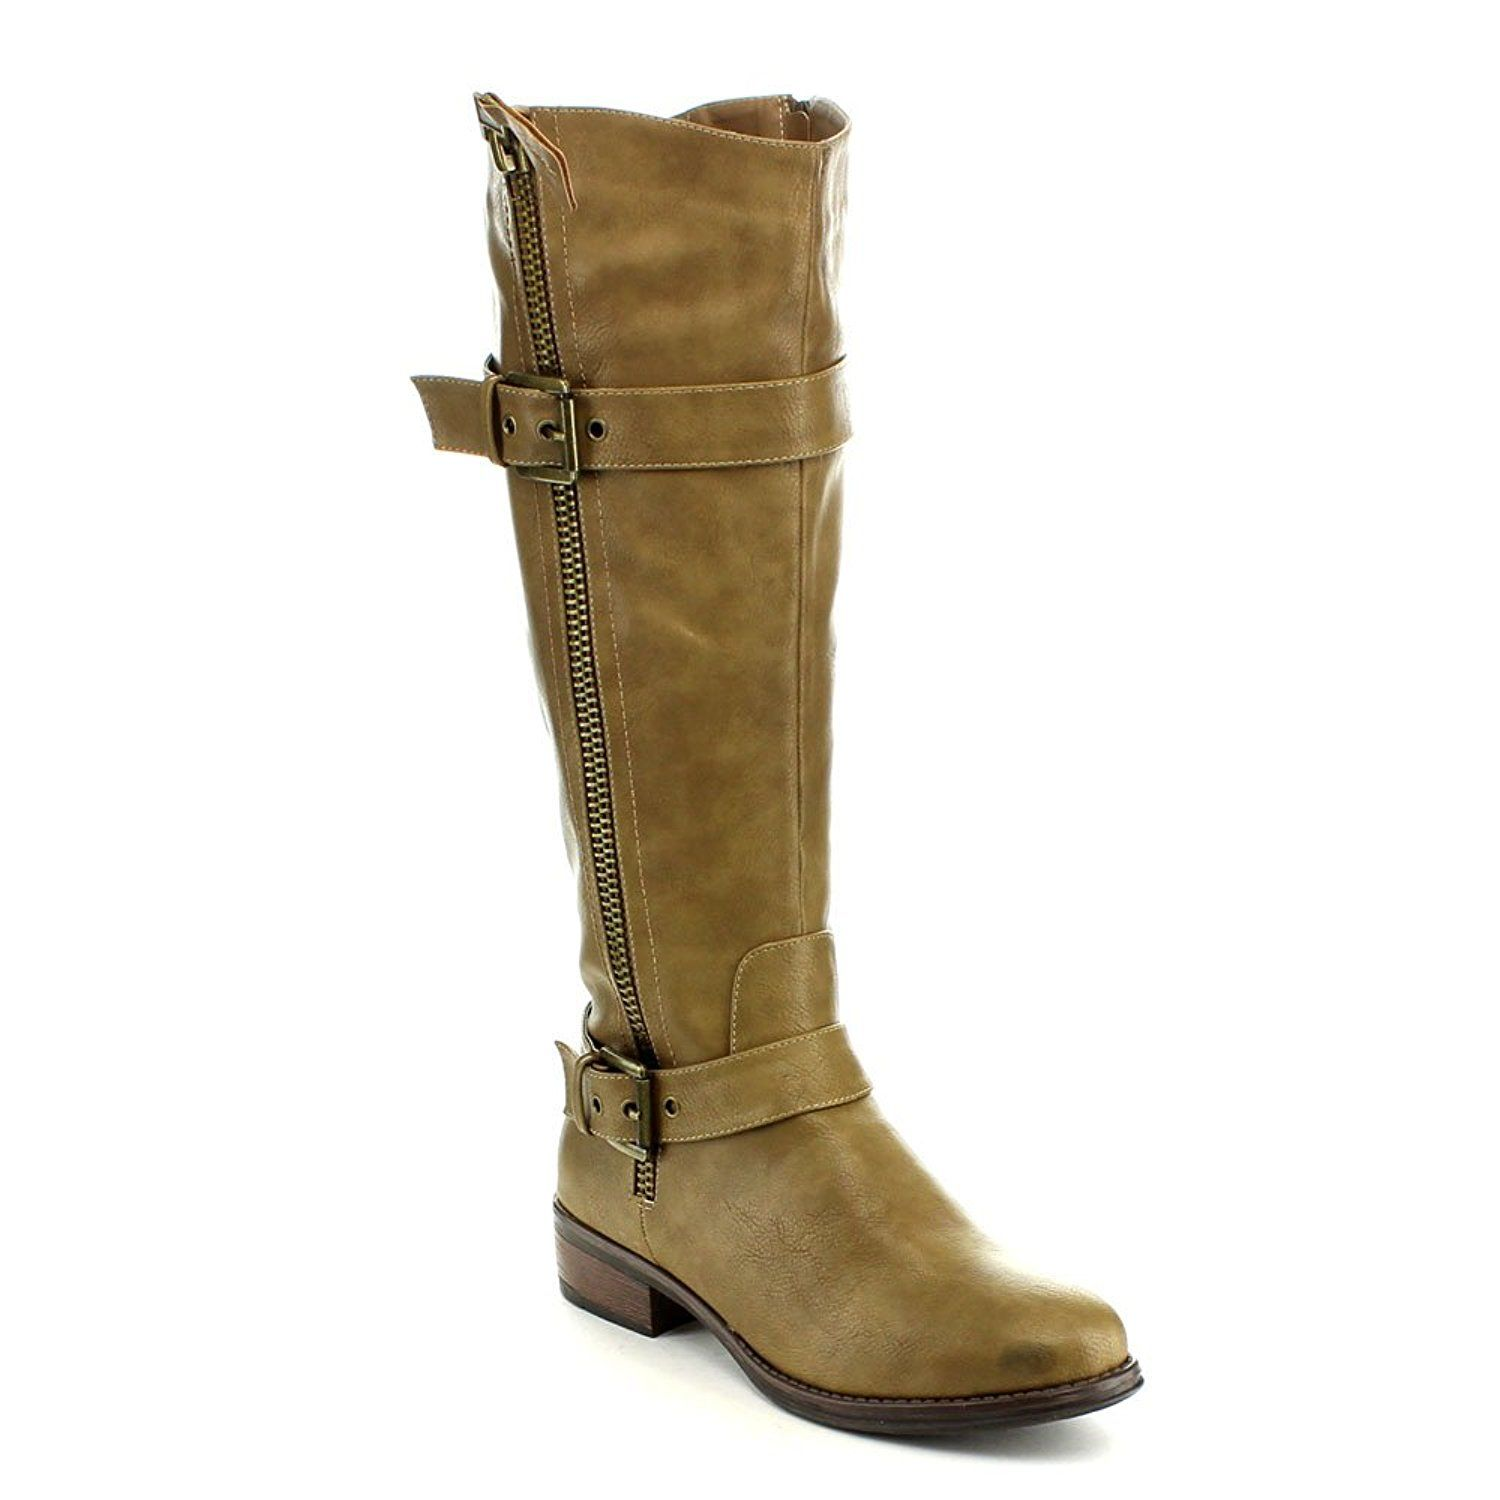 ANNA ENY-11 Women Fashion Buckle Side Zipper Combat Riding Knee High Flat Boot * For more information, visit image link.